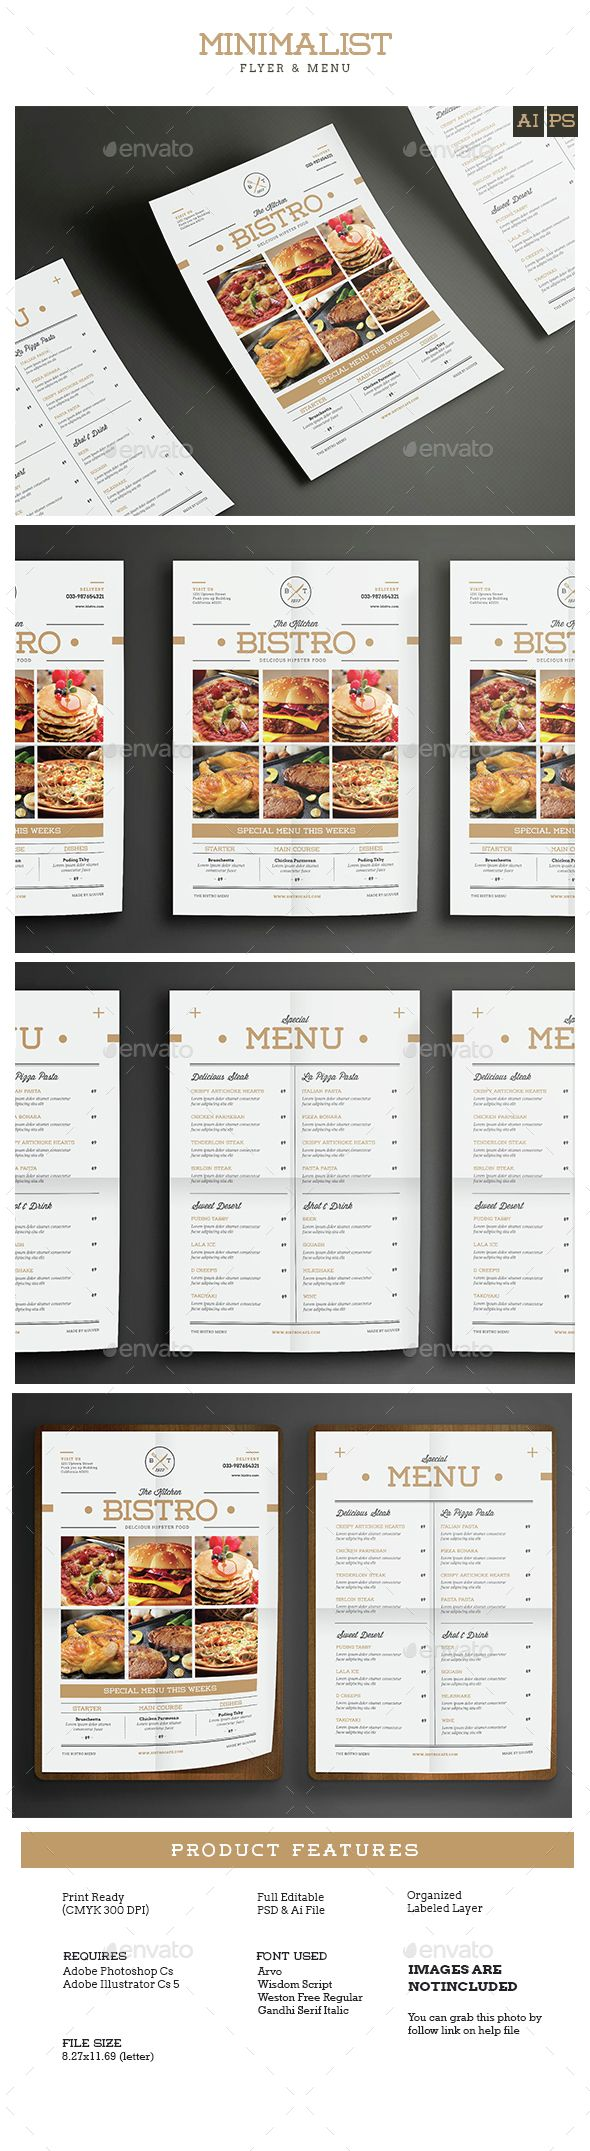 Minimal Restaurant / Food Flyer Menu Template PSD, Vector AI. Download here: http://graphicriver.net/item/minimal-restaurantfood-flyer-menu/14747906?ref=ksioks